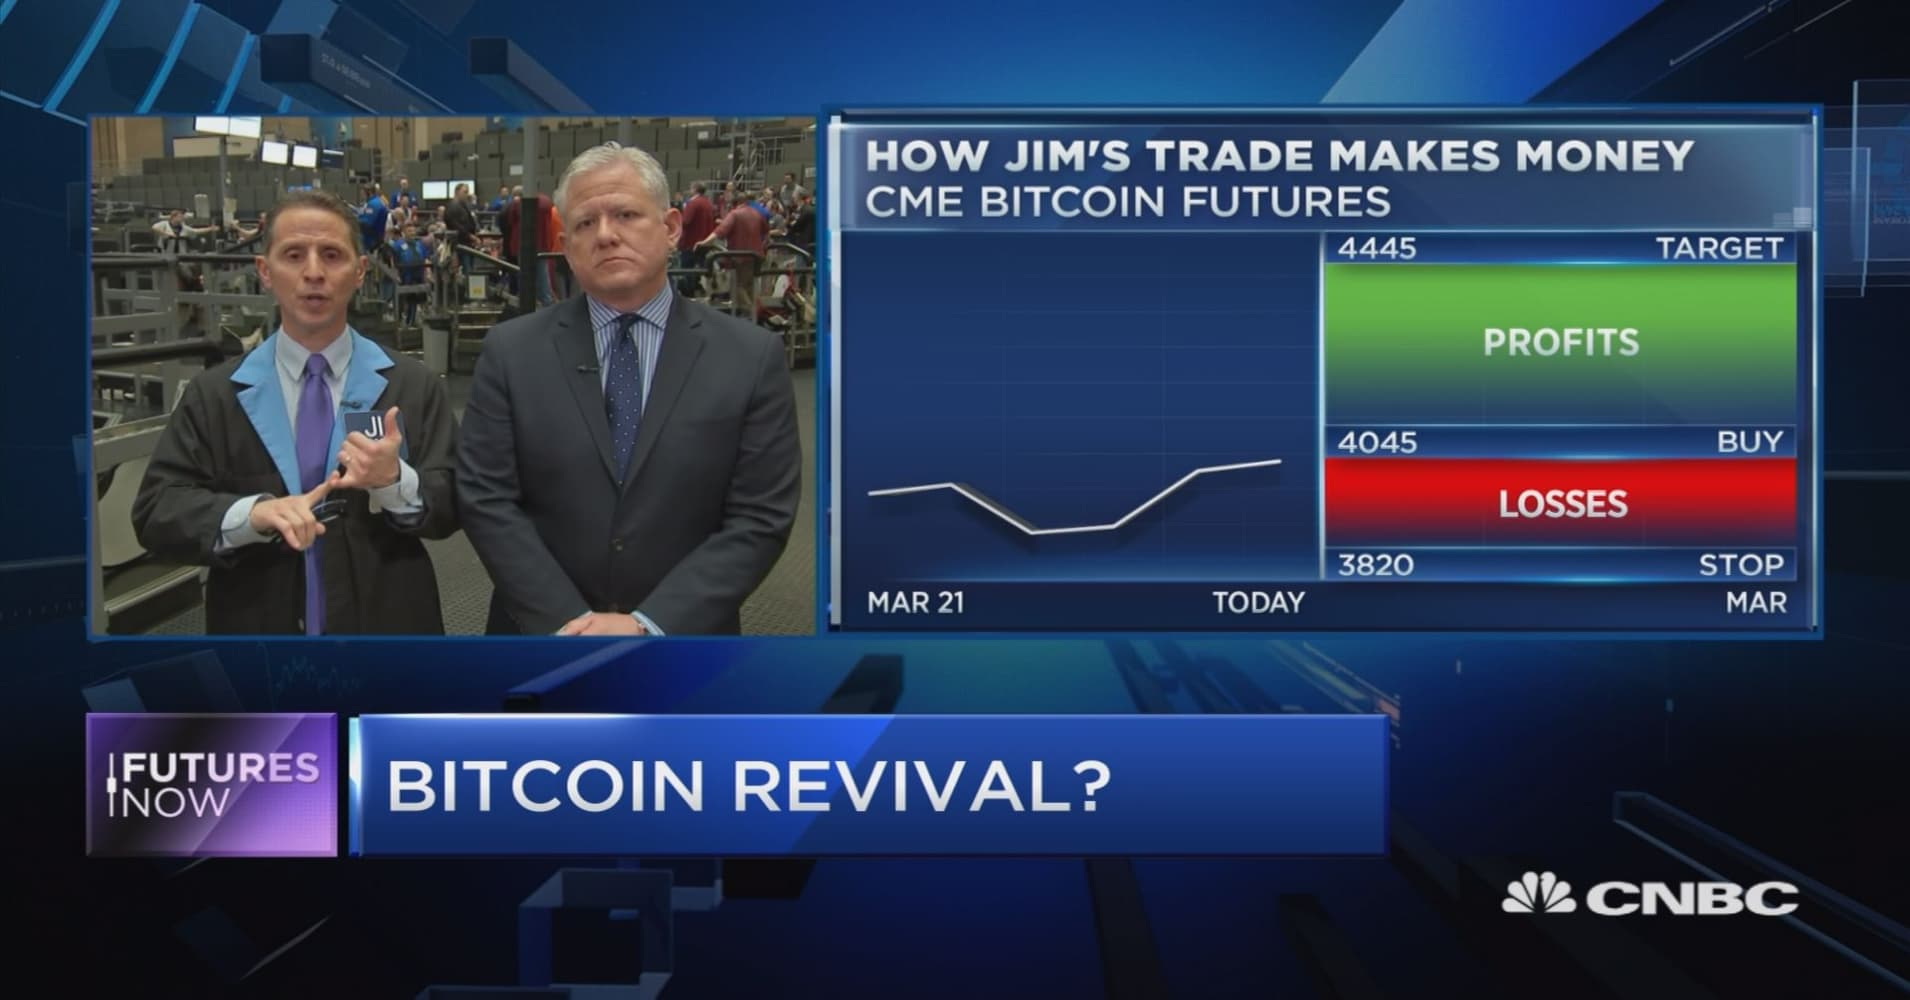 Here's why one trader sees a bitcoin revival on the way